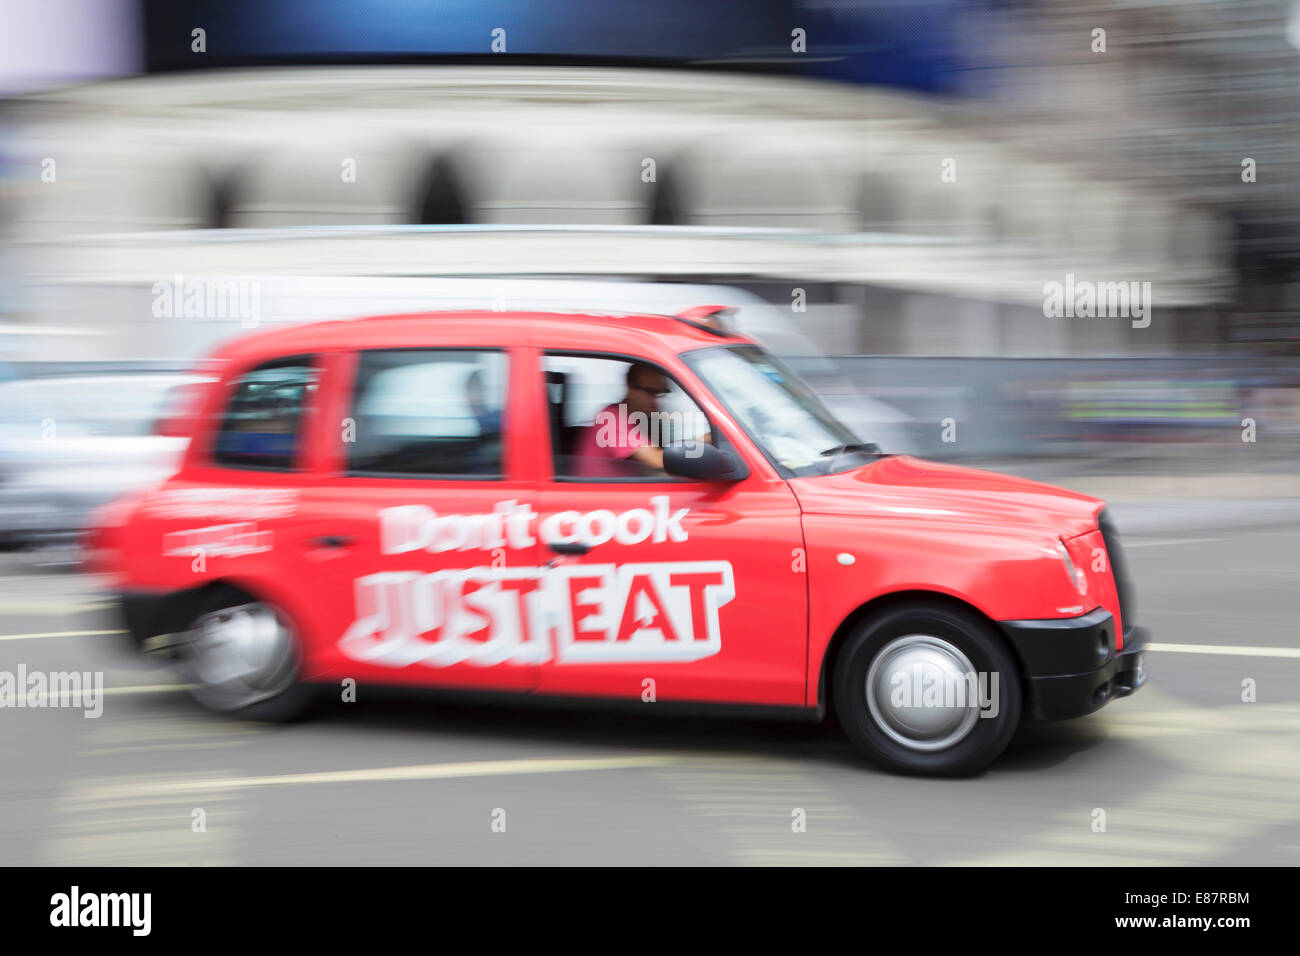 Taxi, motion blur, Piccadilly Circus, Londres, Angleterre, Royaume-Uni Photo Stock